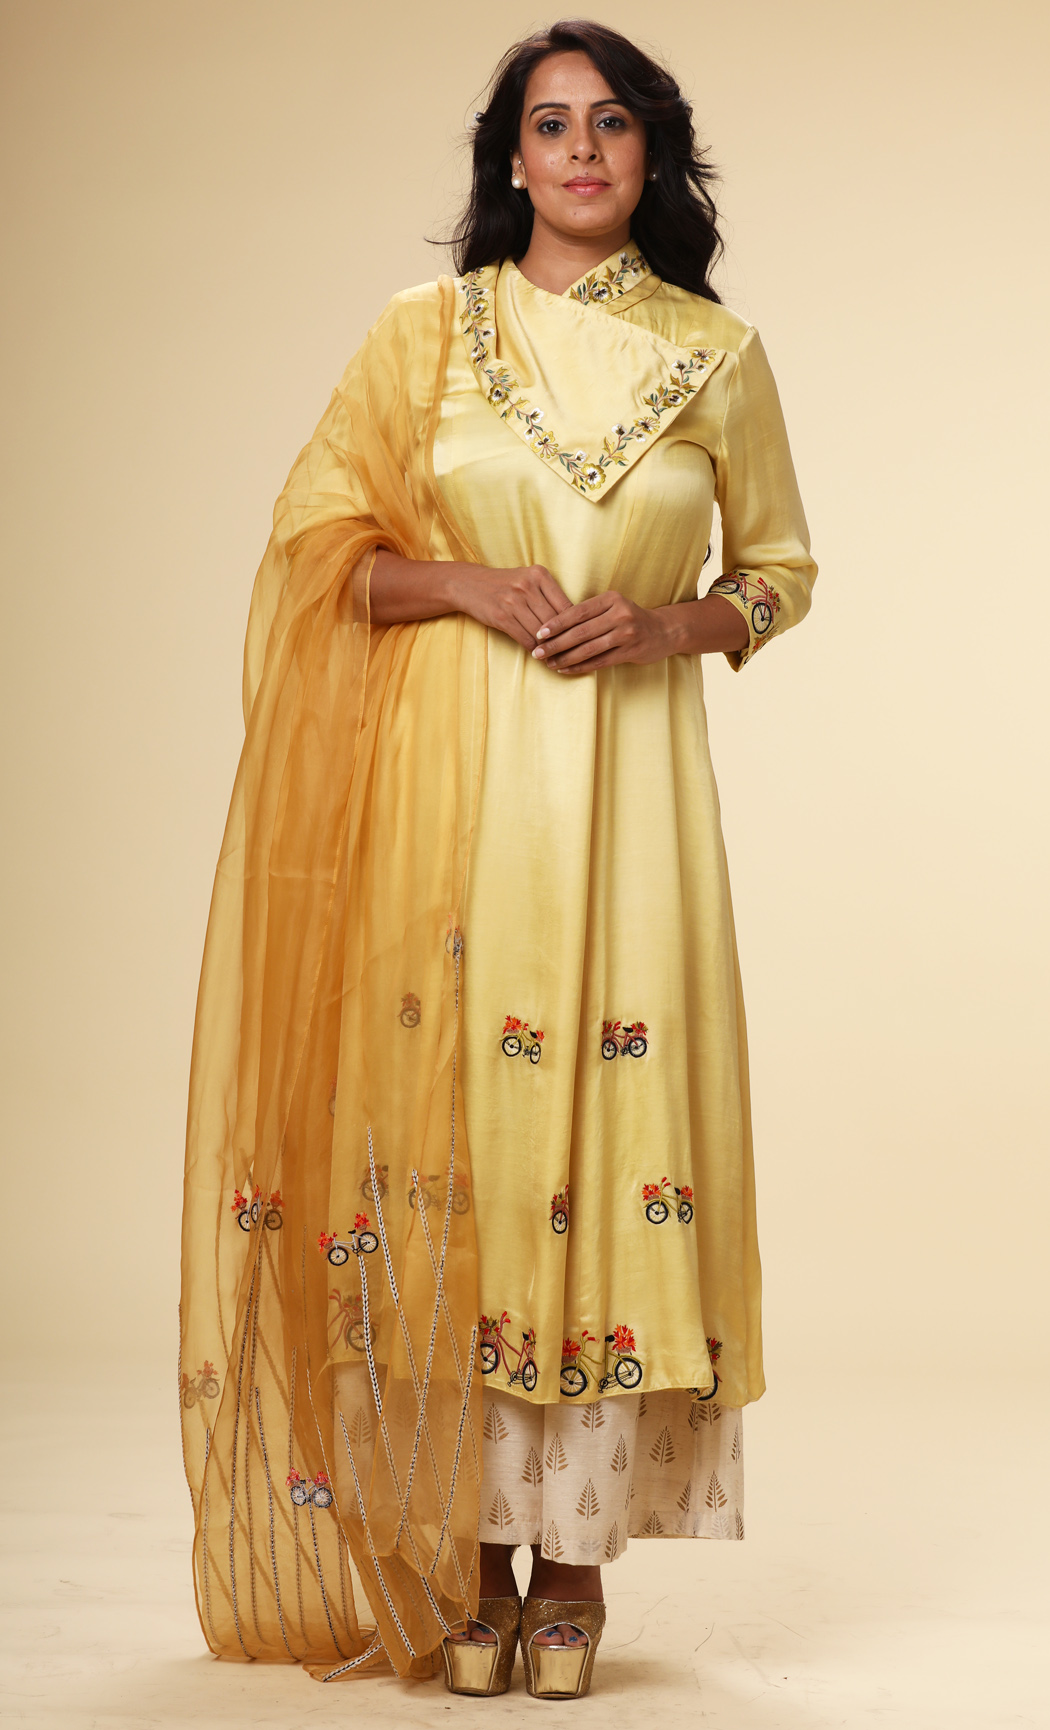 Yellow Silk Kurta with a Yellow Dupatta and Pants - Buy Online